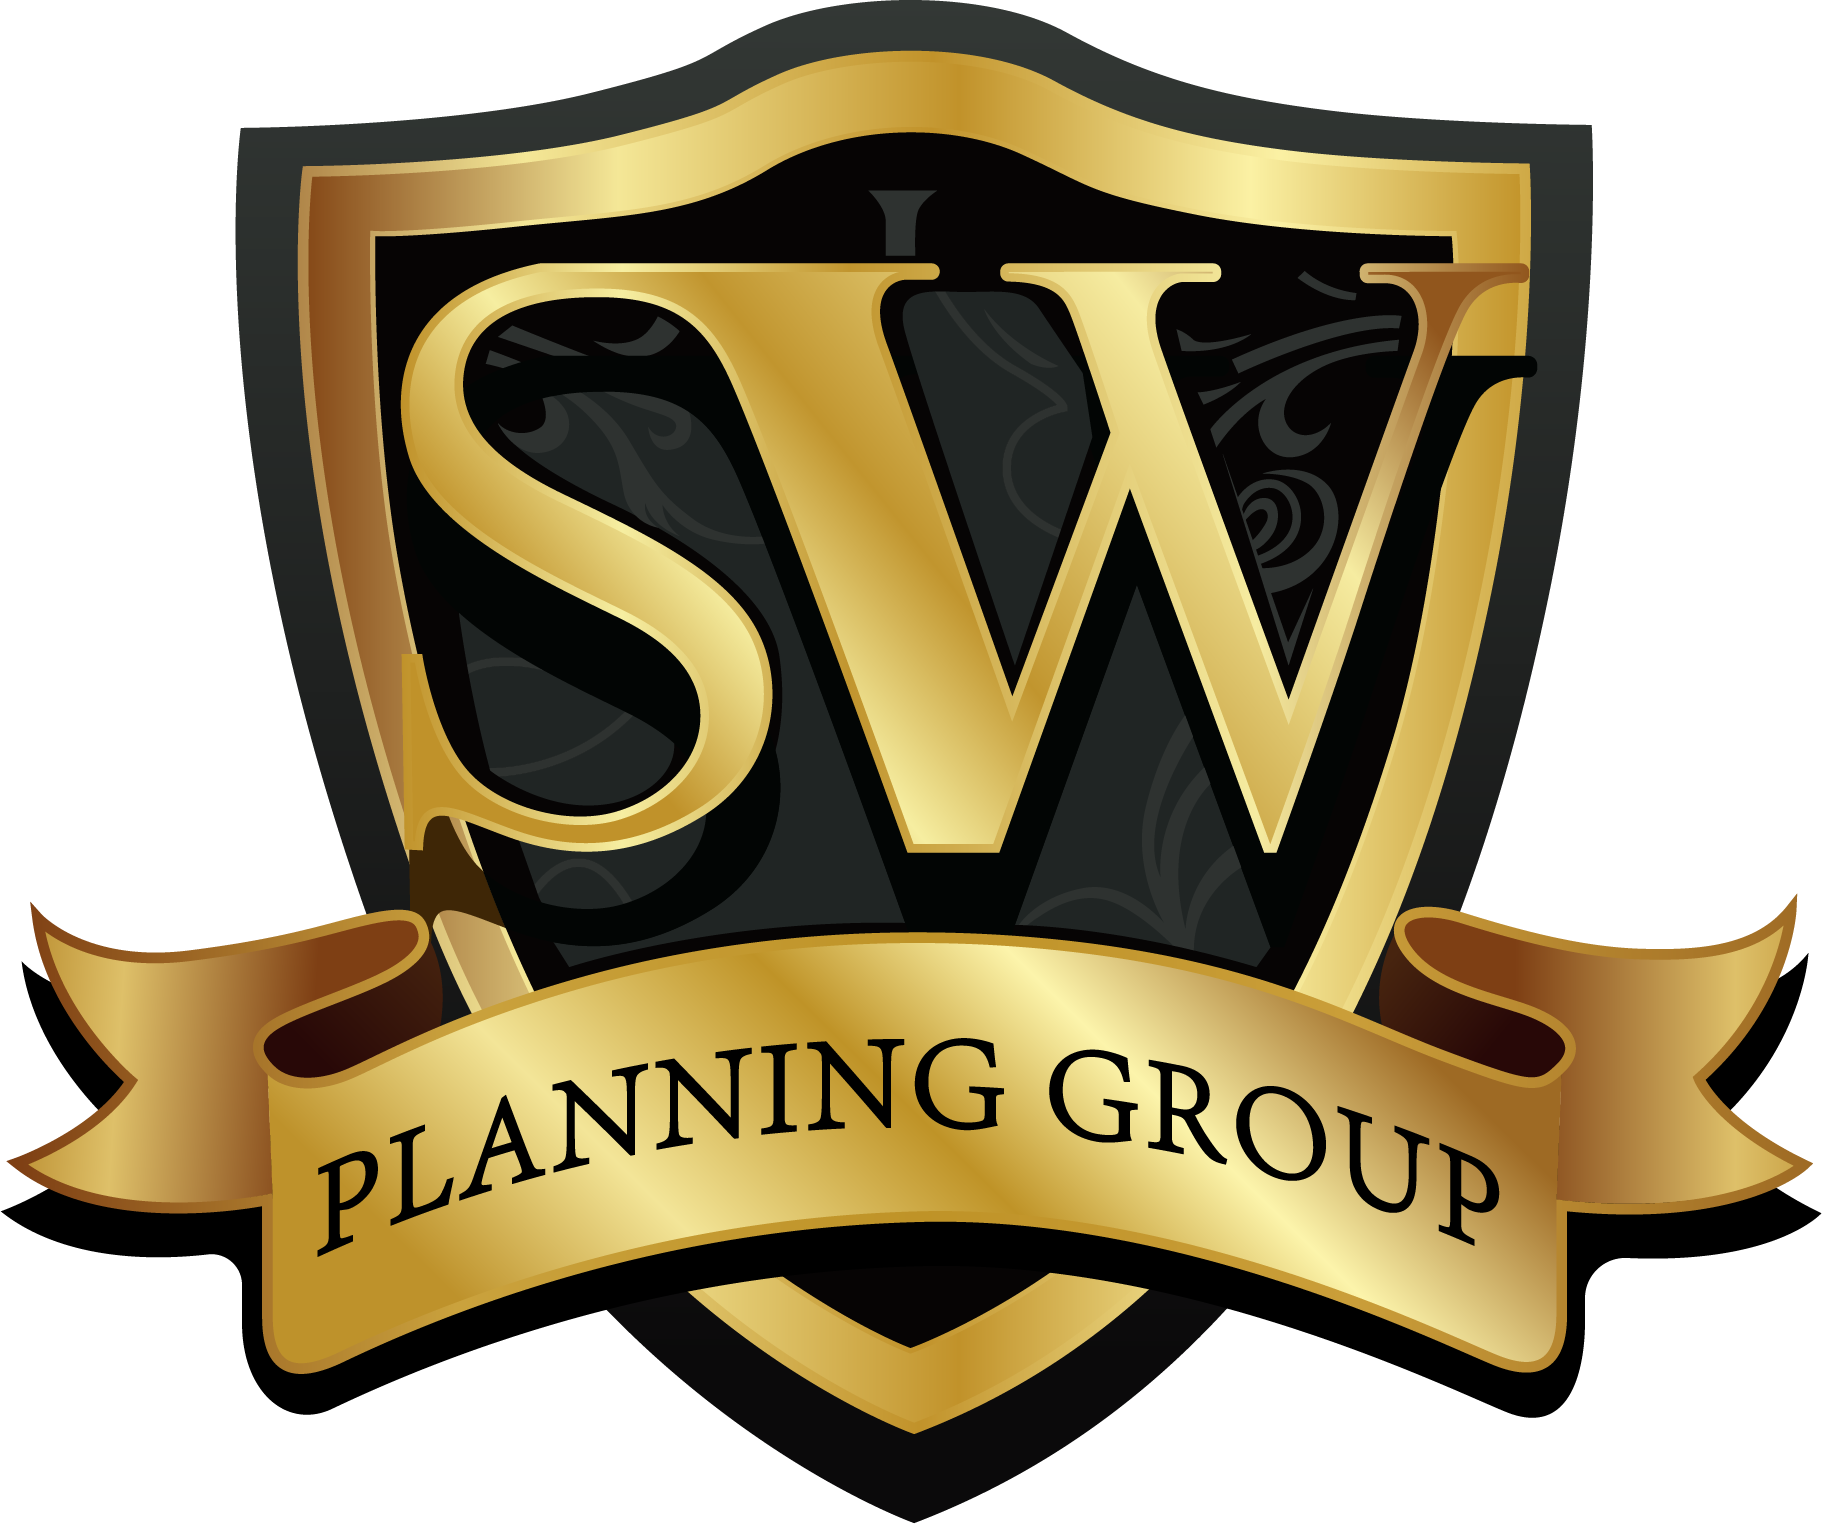 Secure Wealth Planning Group